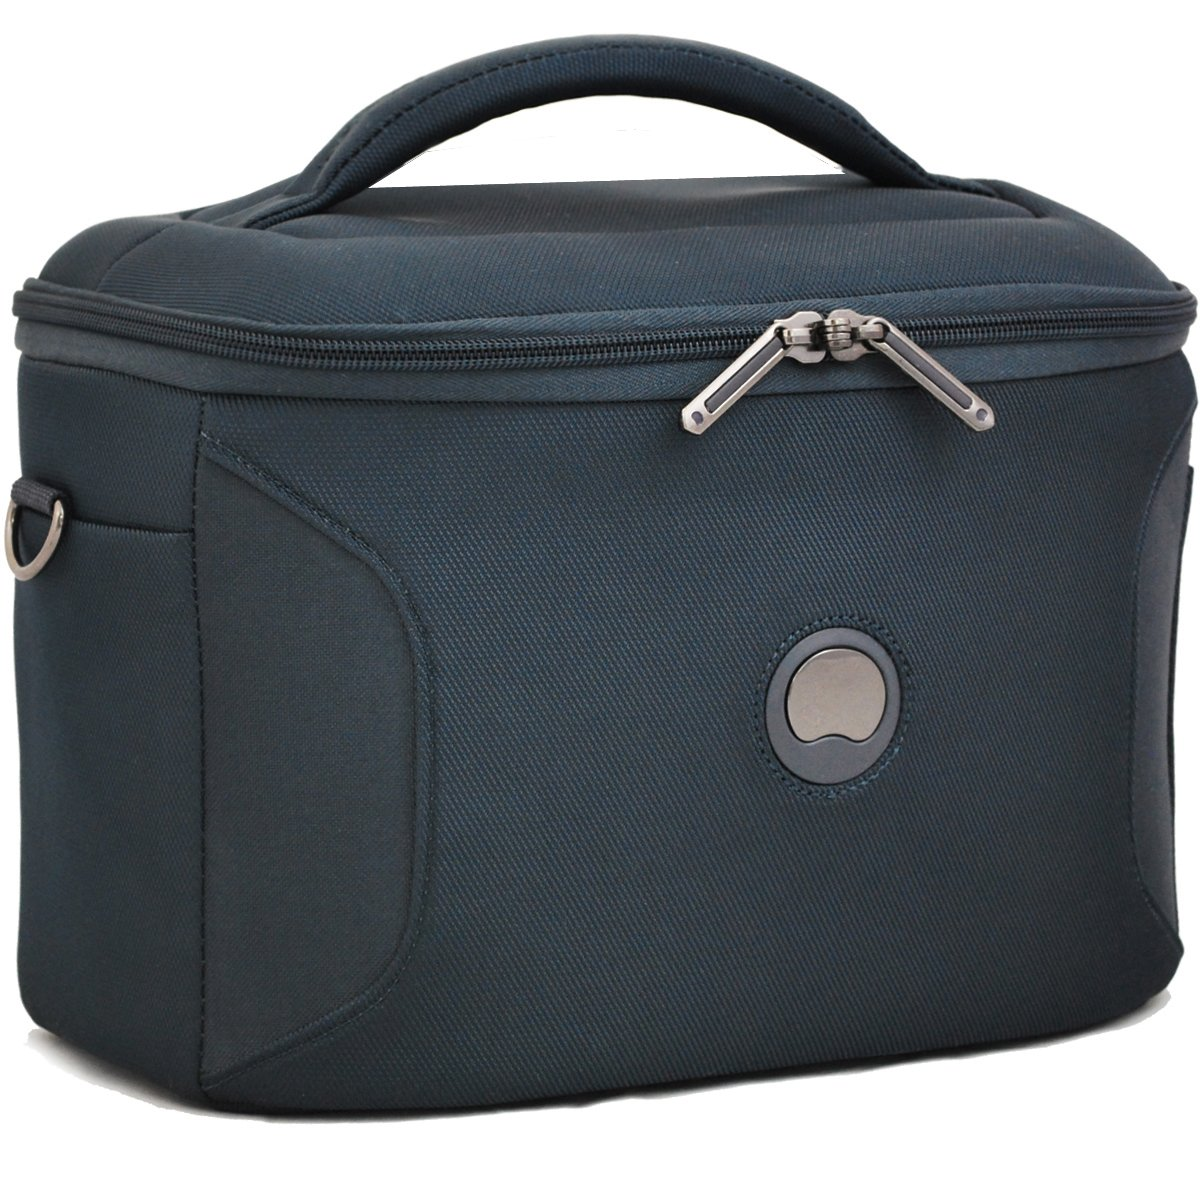 Beauty case U-LITE Classic 2 DELSEY - Anthracite